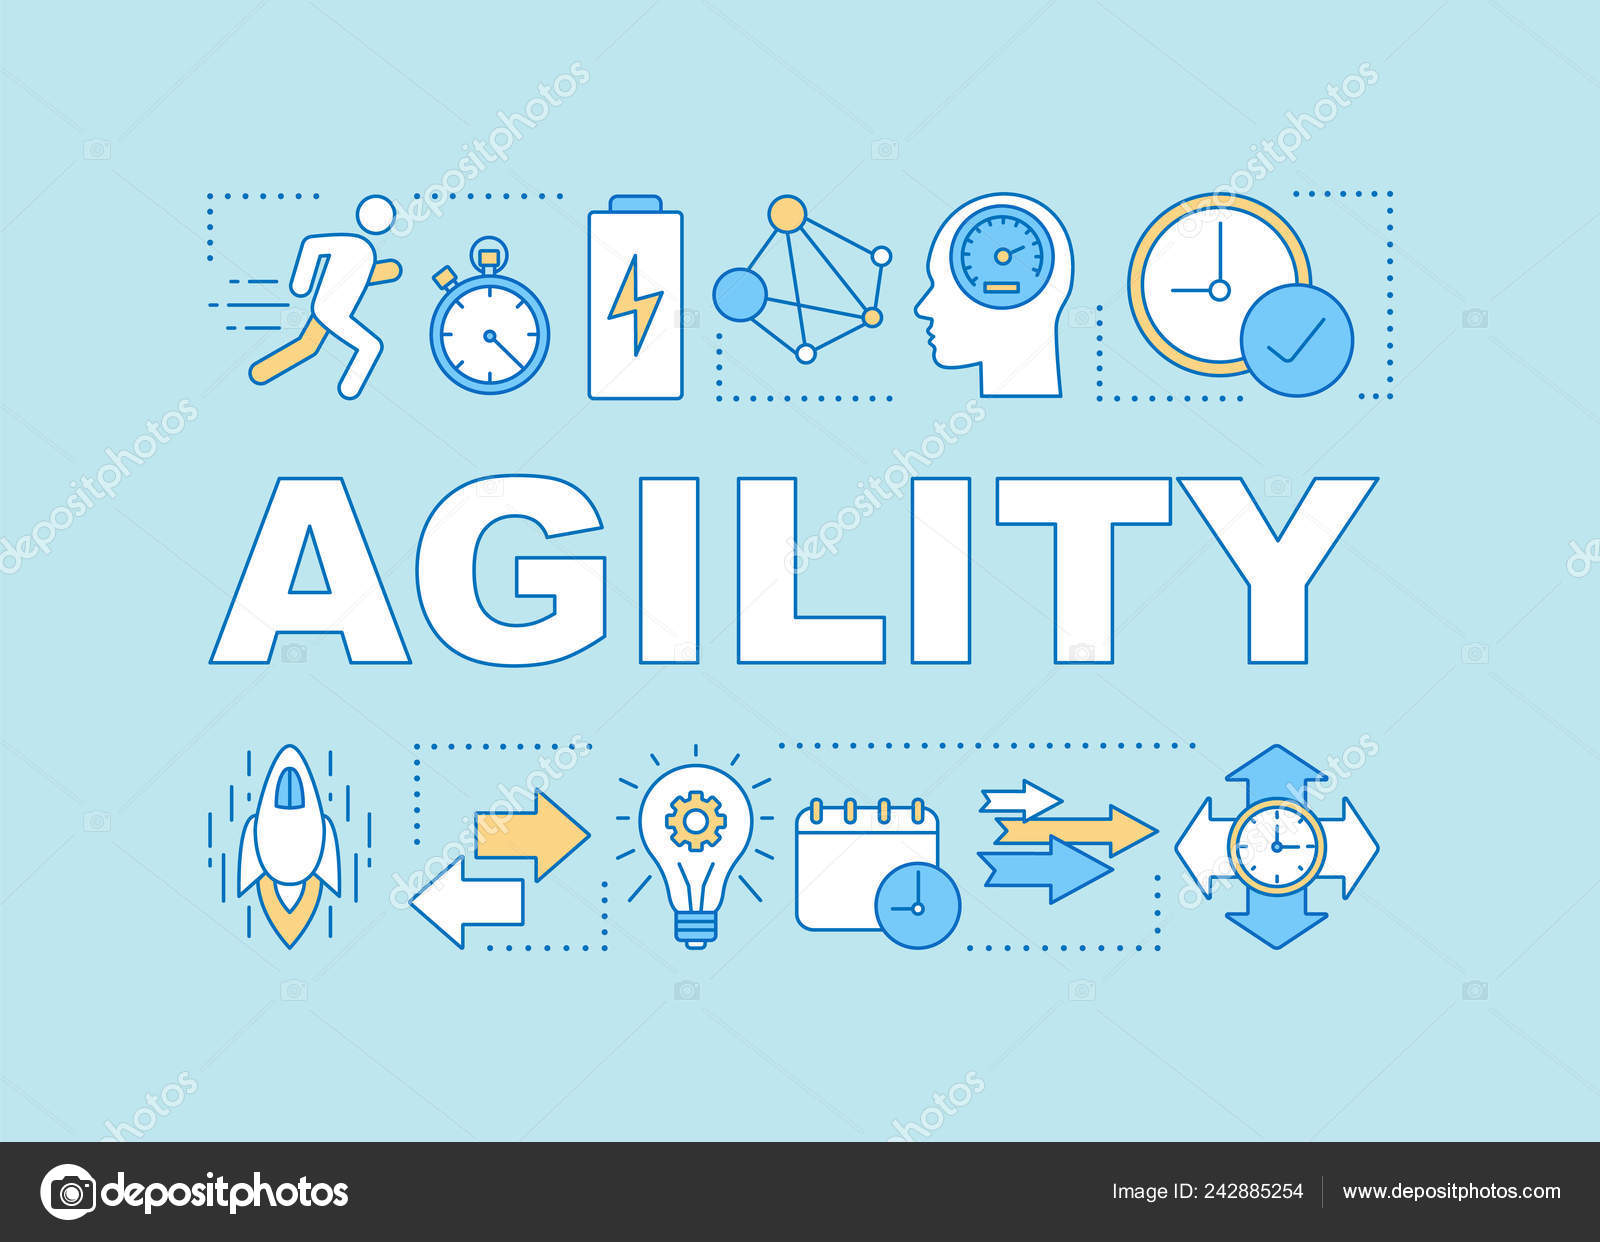 Agility Word Concepts Banner Timeliness Time Management Productivity Efficiency Respect Stock Vector C Bsd 242885254